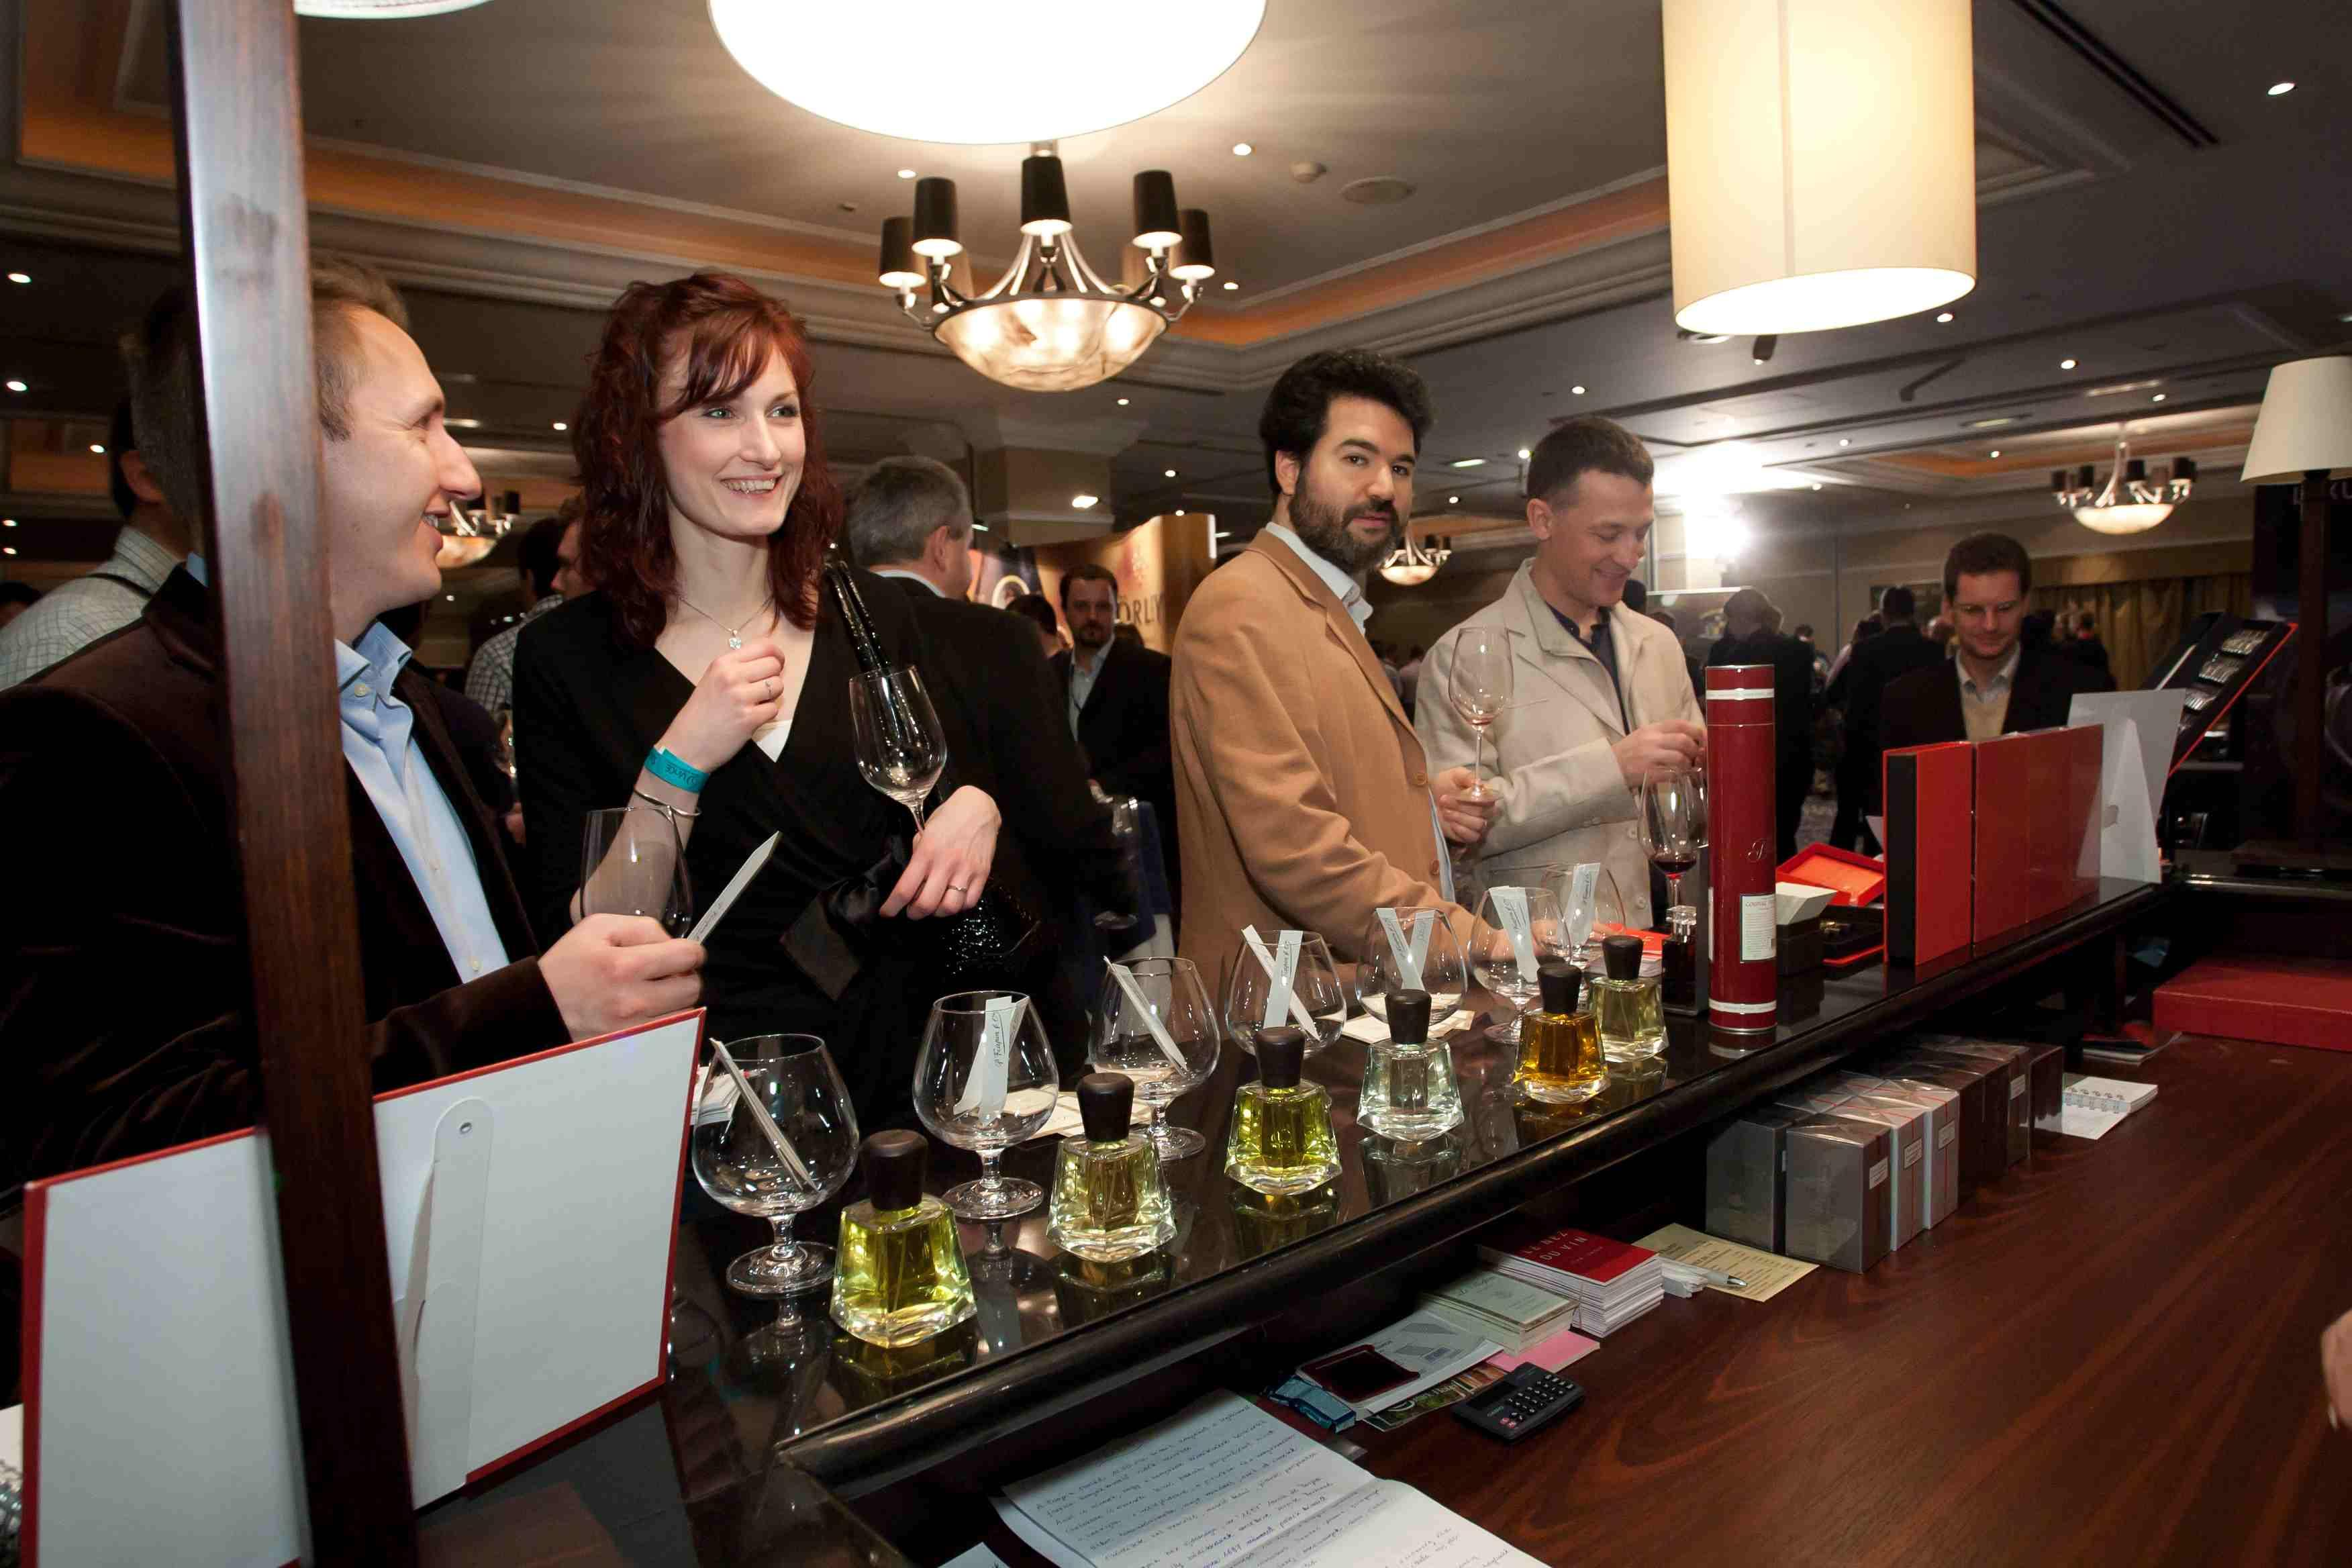 Invitation: VinCE Budapest, The Essential Wine Event In Central Europe, 8 - 10 March